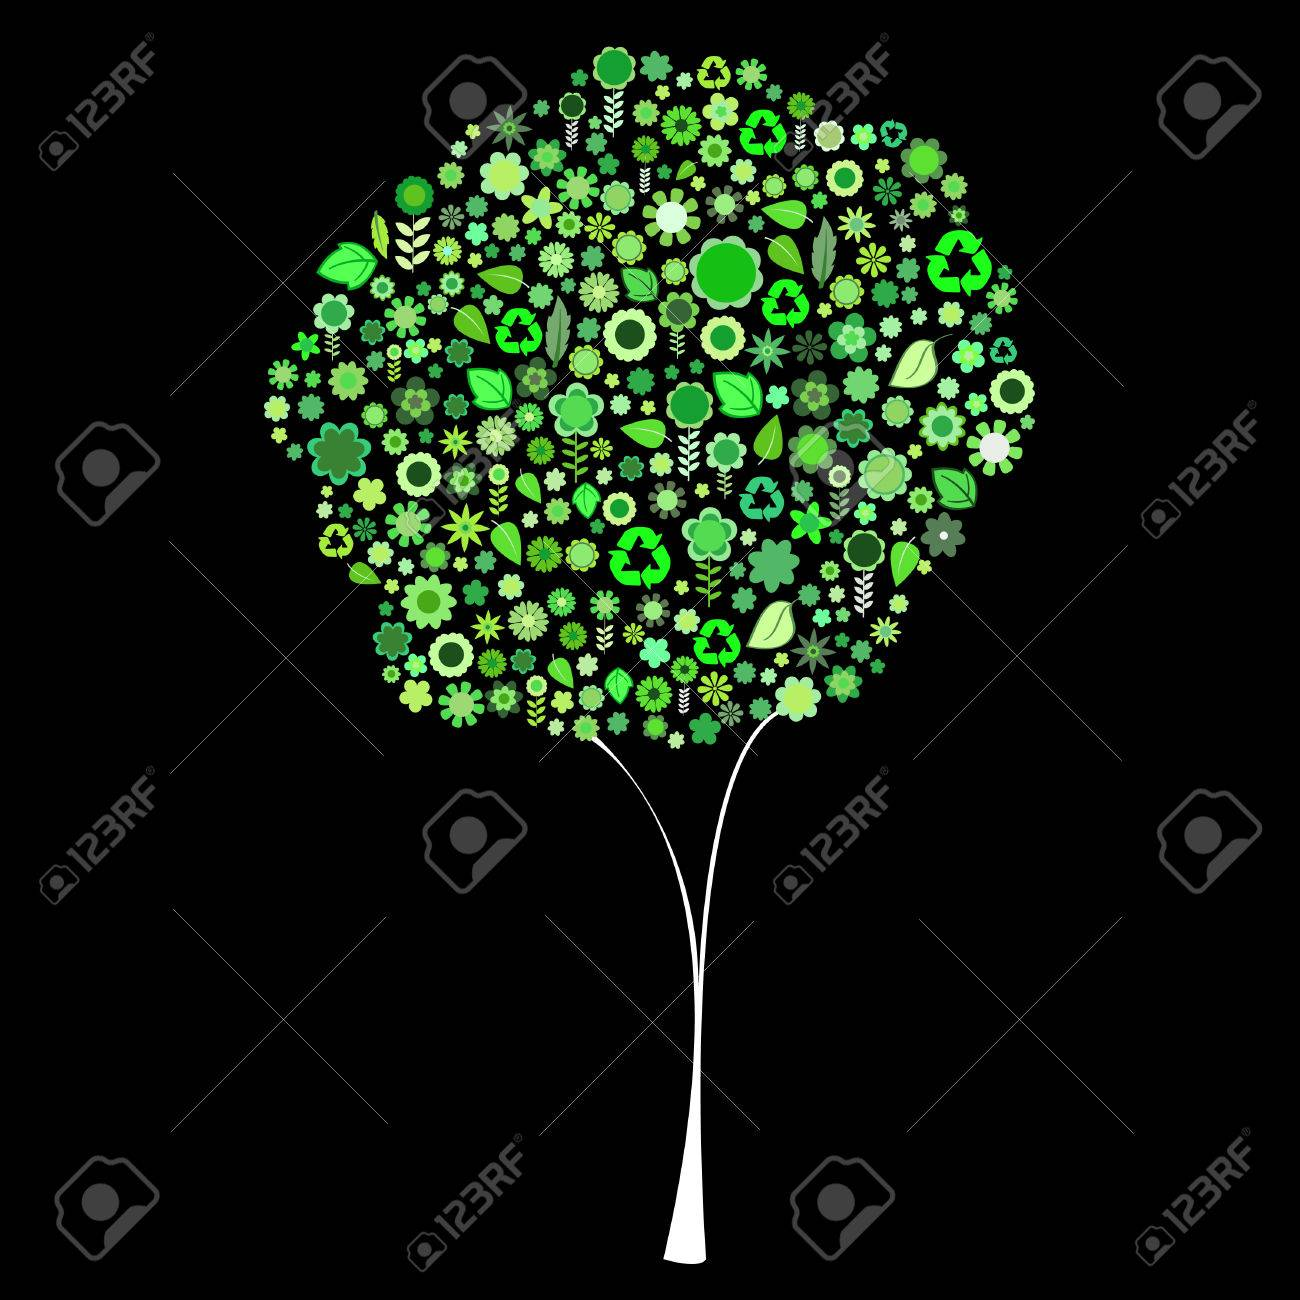 Vector illustration of tree shape made up a lot of  green small flowers and leaf on the black background Stock Vector - 4056064